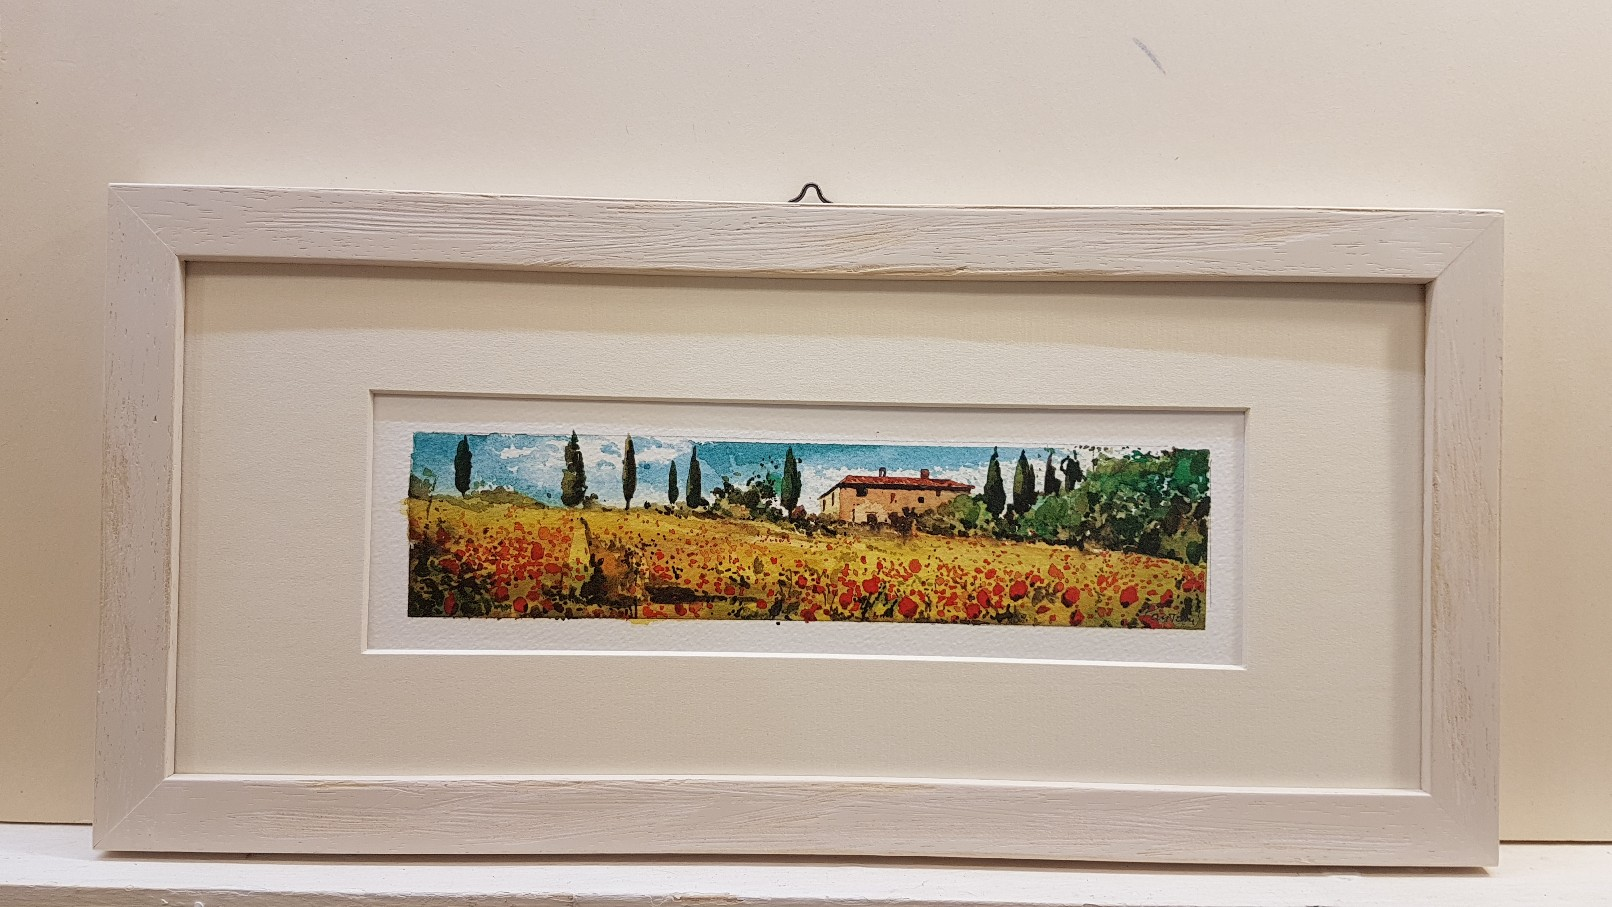 Papaveri con casolare - poppies with cottage